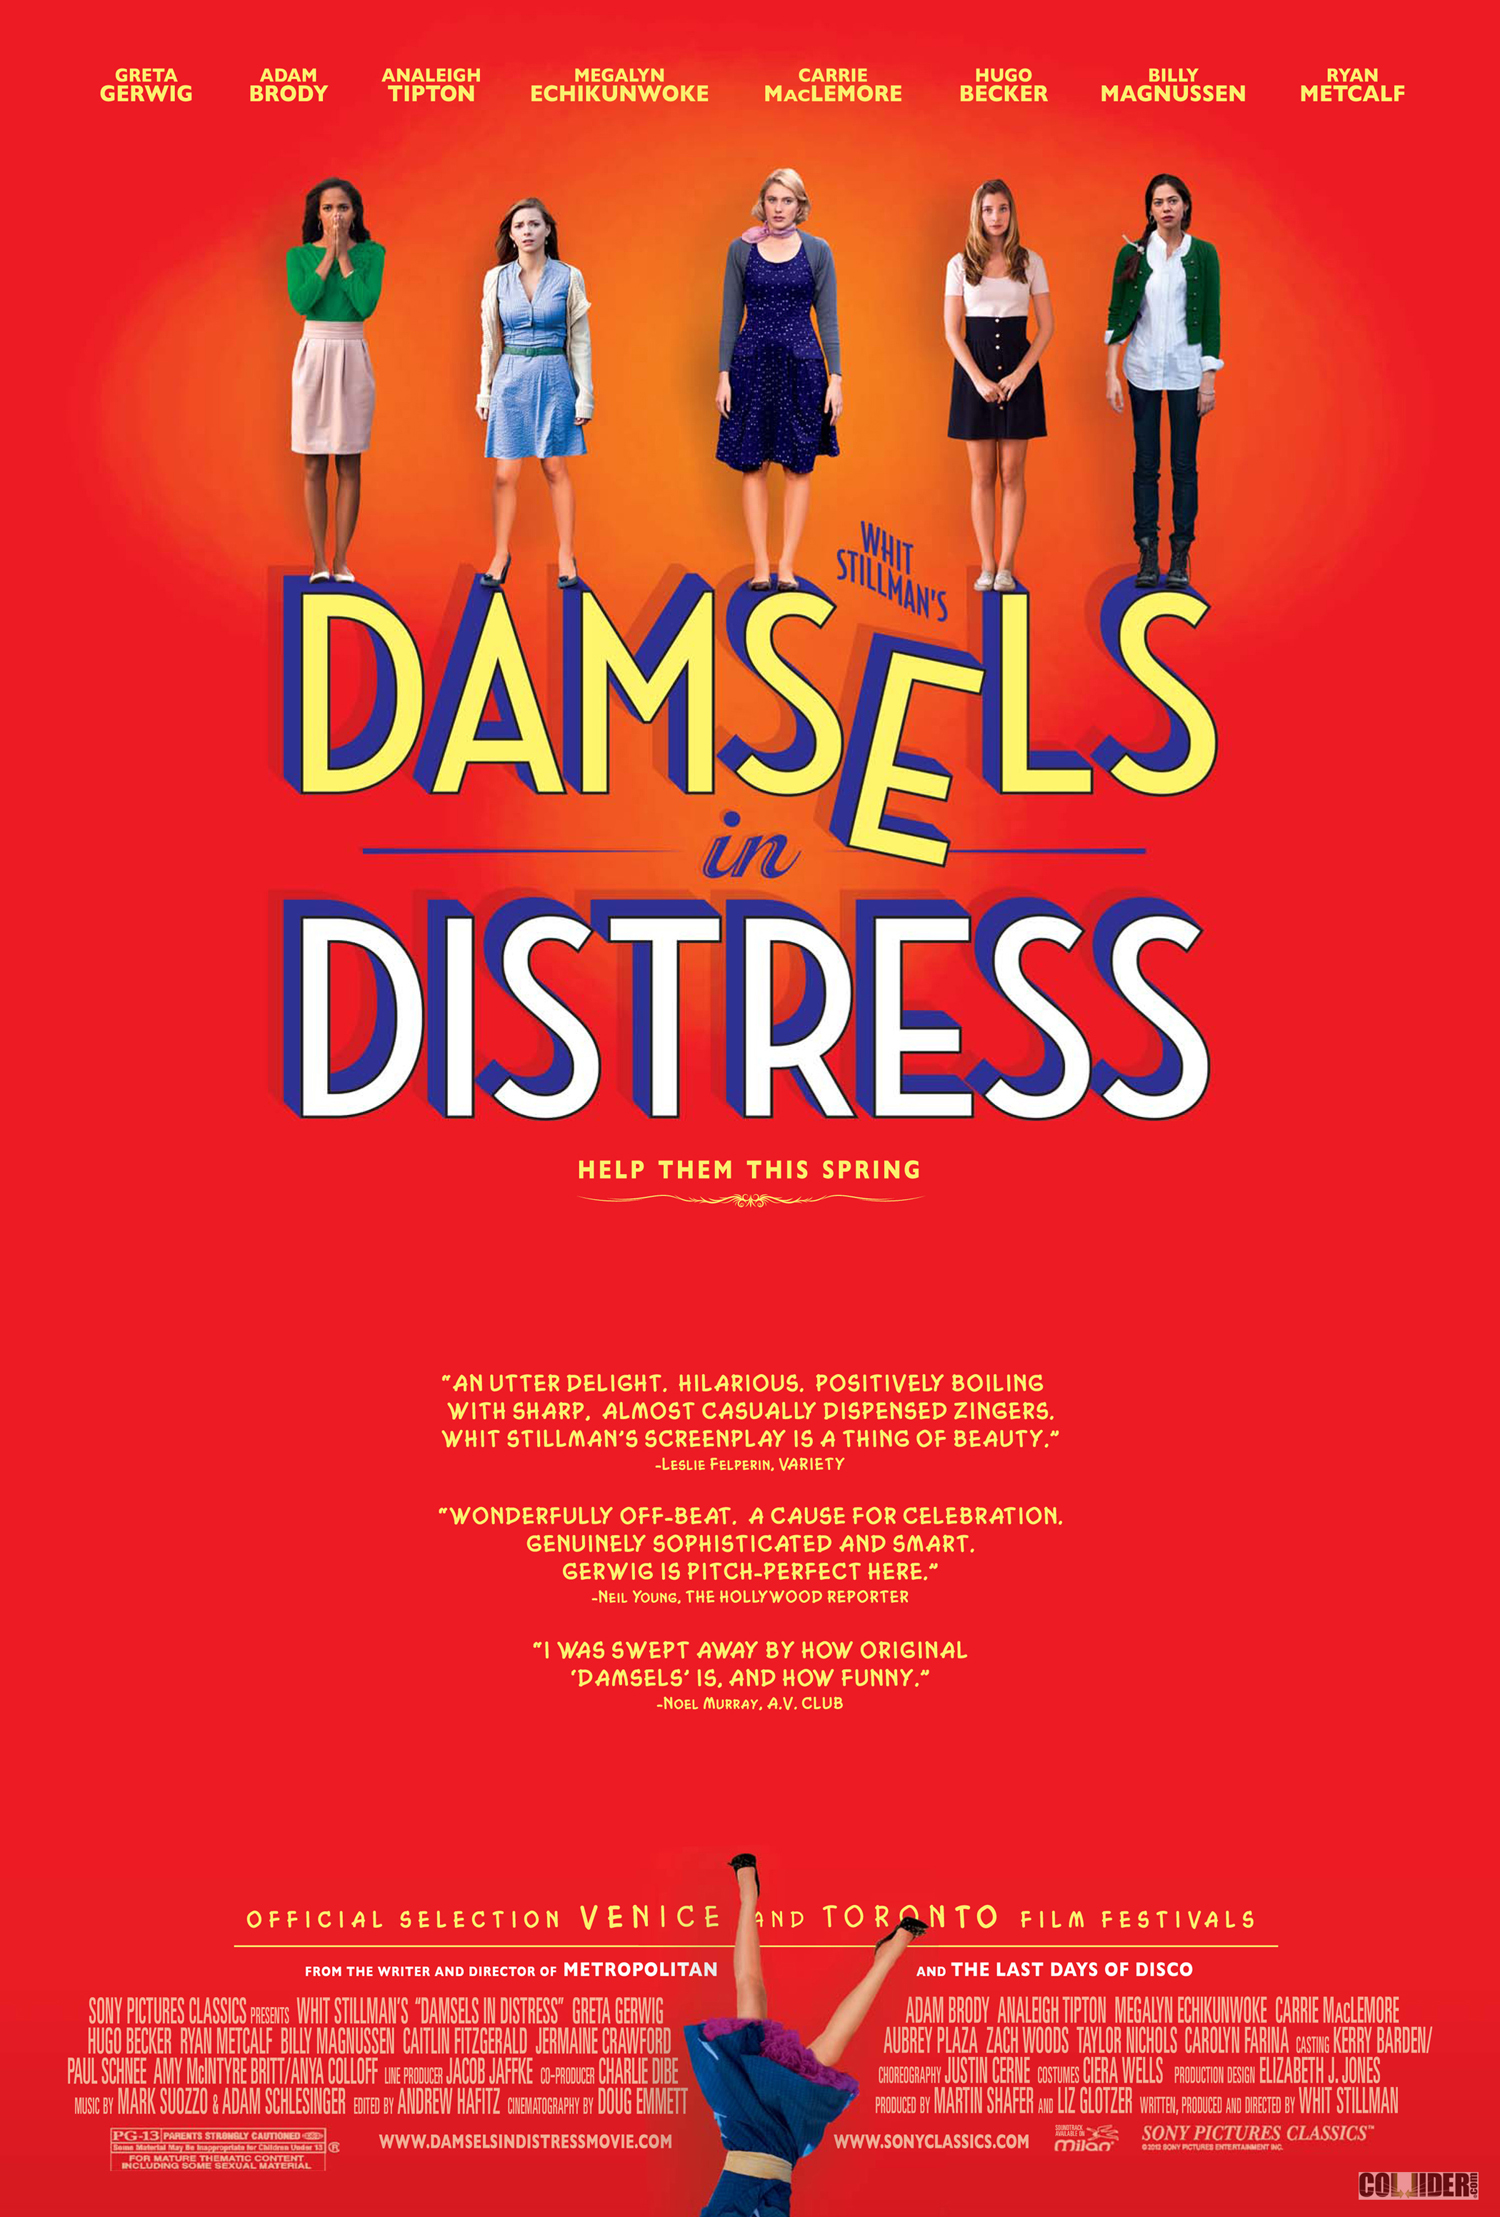 damsel in distress Whit stillman's damsels in distress is a comedy about a trio of beautiful girls as they set out to revolutionize life at a grungy american university - the dynamic leader violet wister (greta gerwig), principled rose (megalyn echikunwoke) and sexy heather (carrie maclemore) they welcome transfer student lily (analeigh tipton) into their group which seeks to help severely depressed students with a program of good hygiene and musical dance numbers the girls become romantically entangled with.